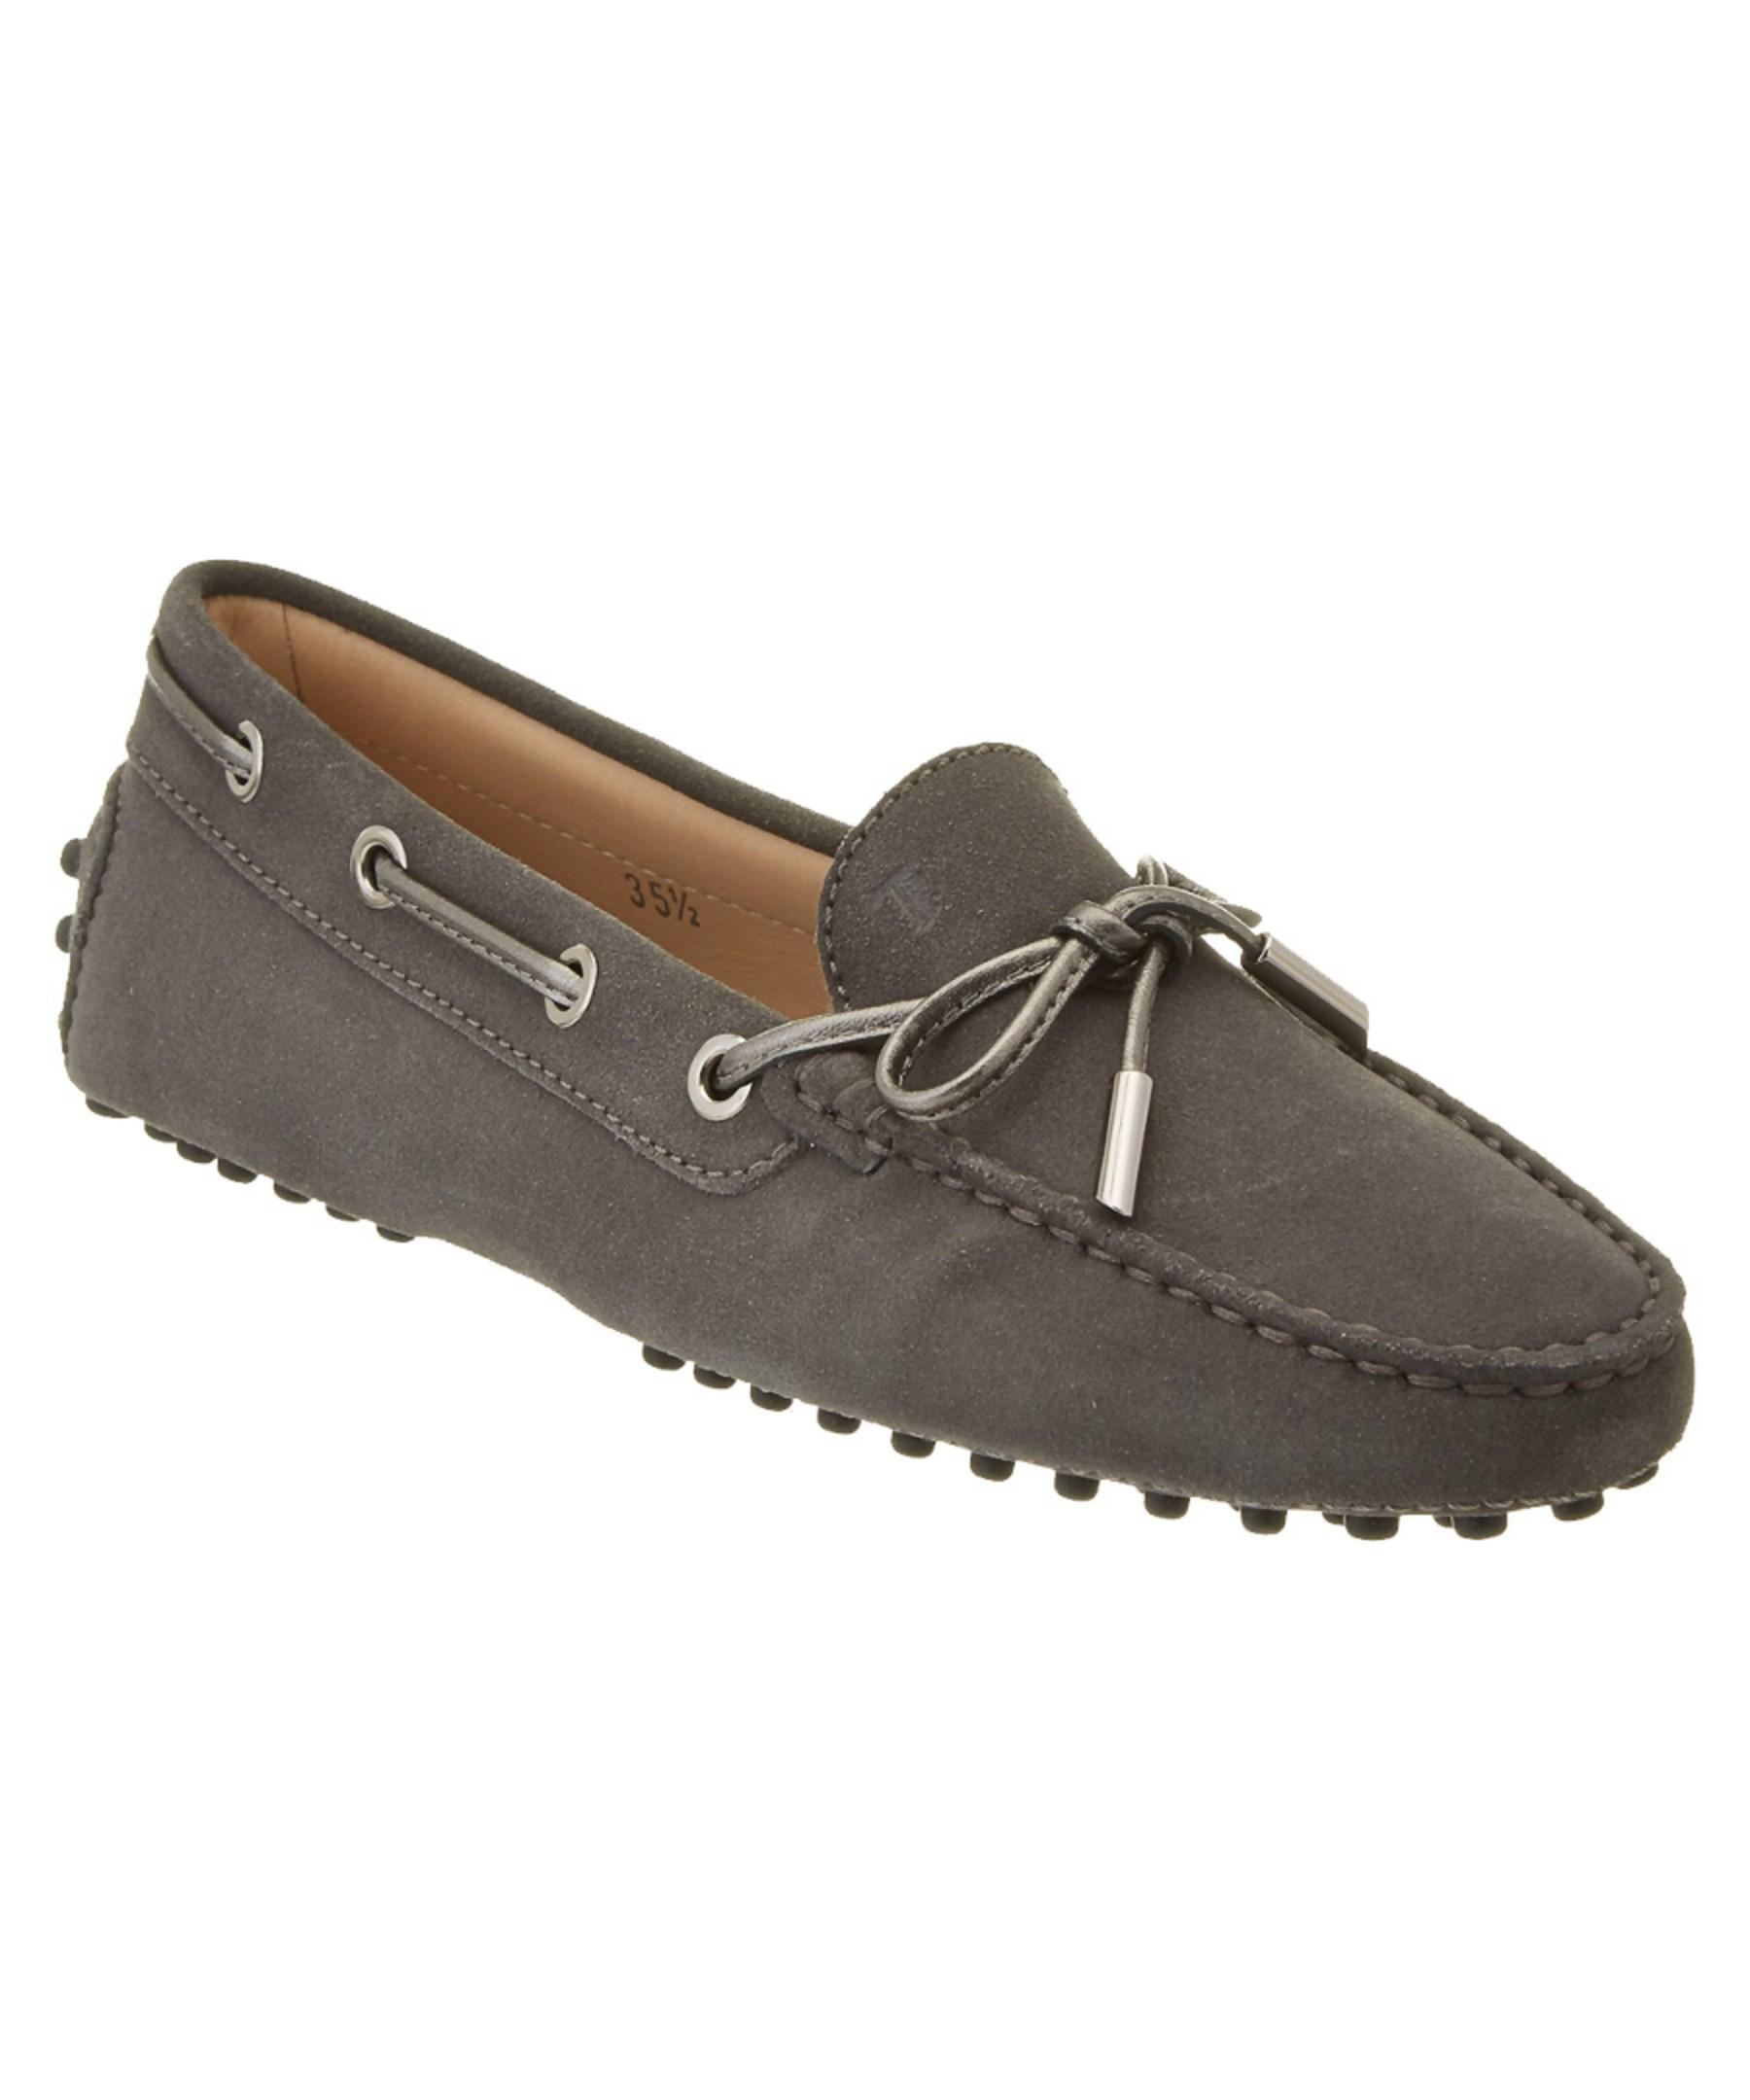 Tods Womens Gommino Driving Shoe